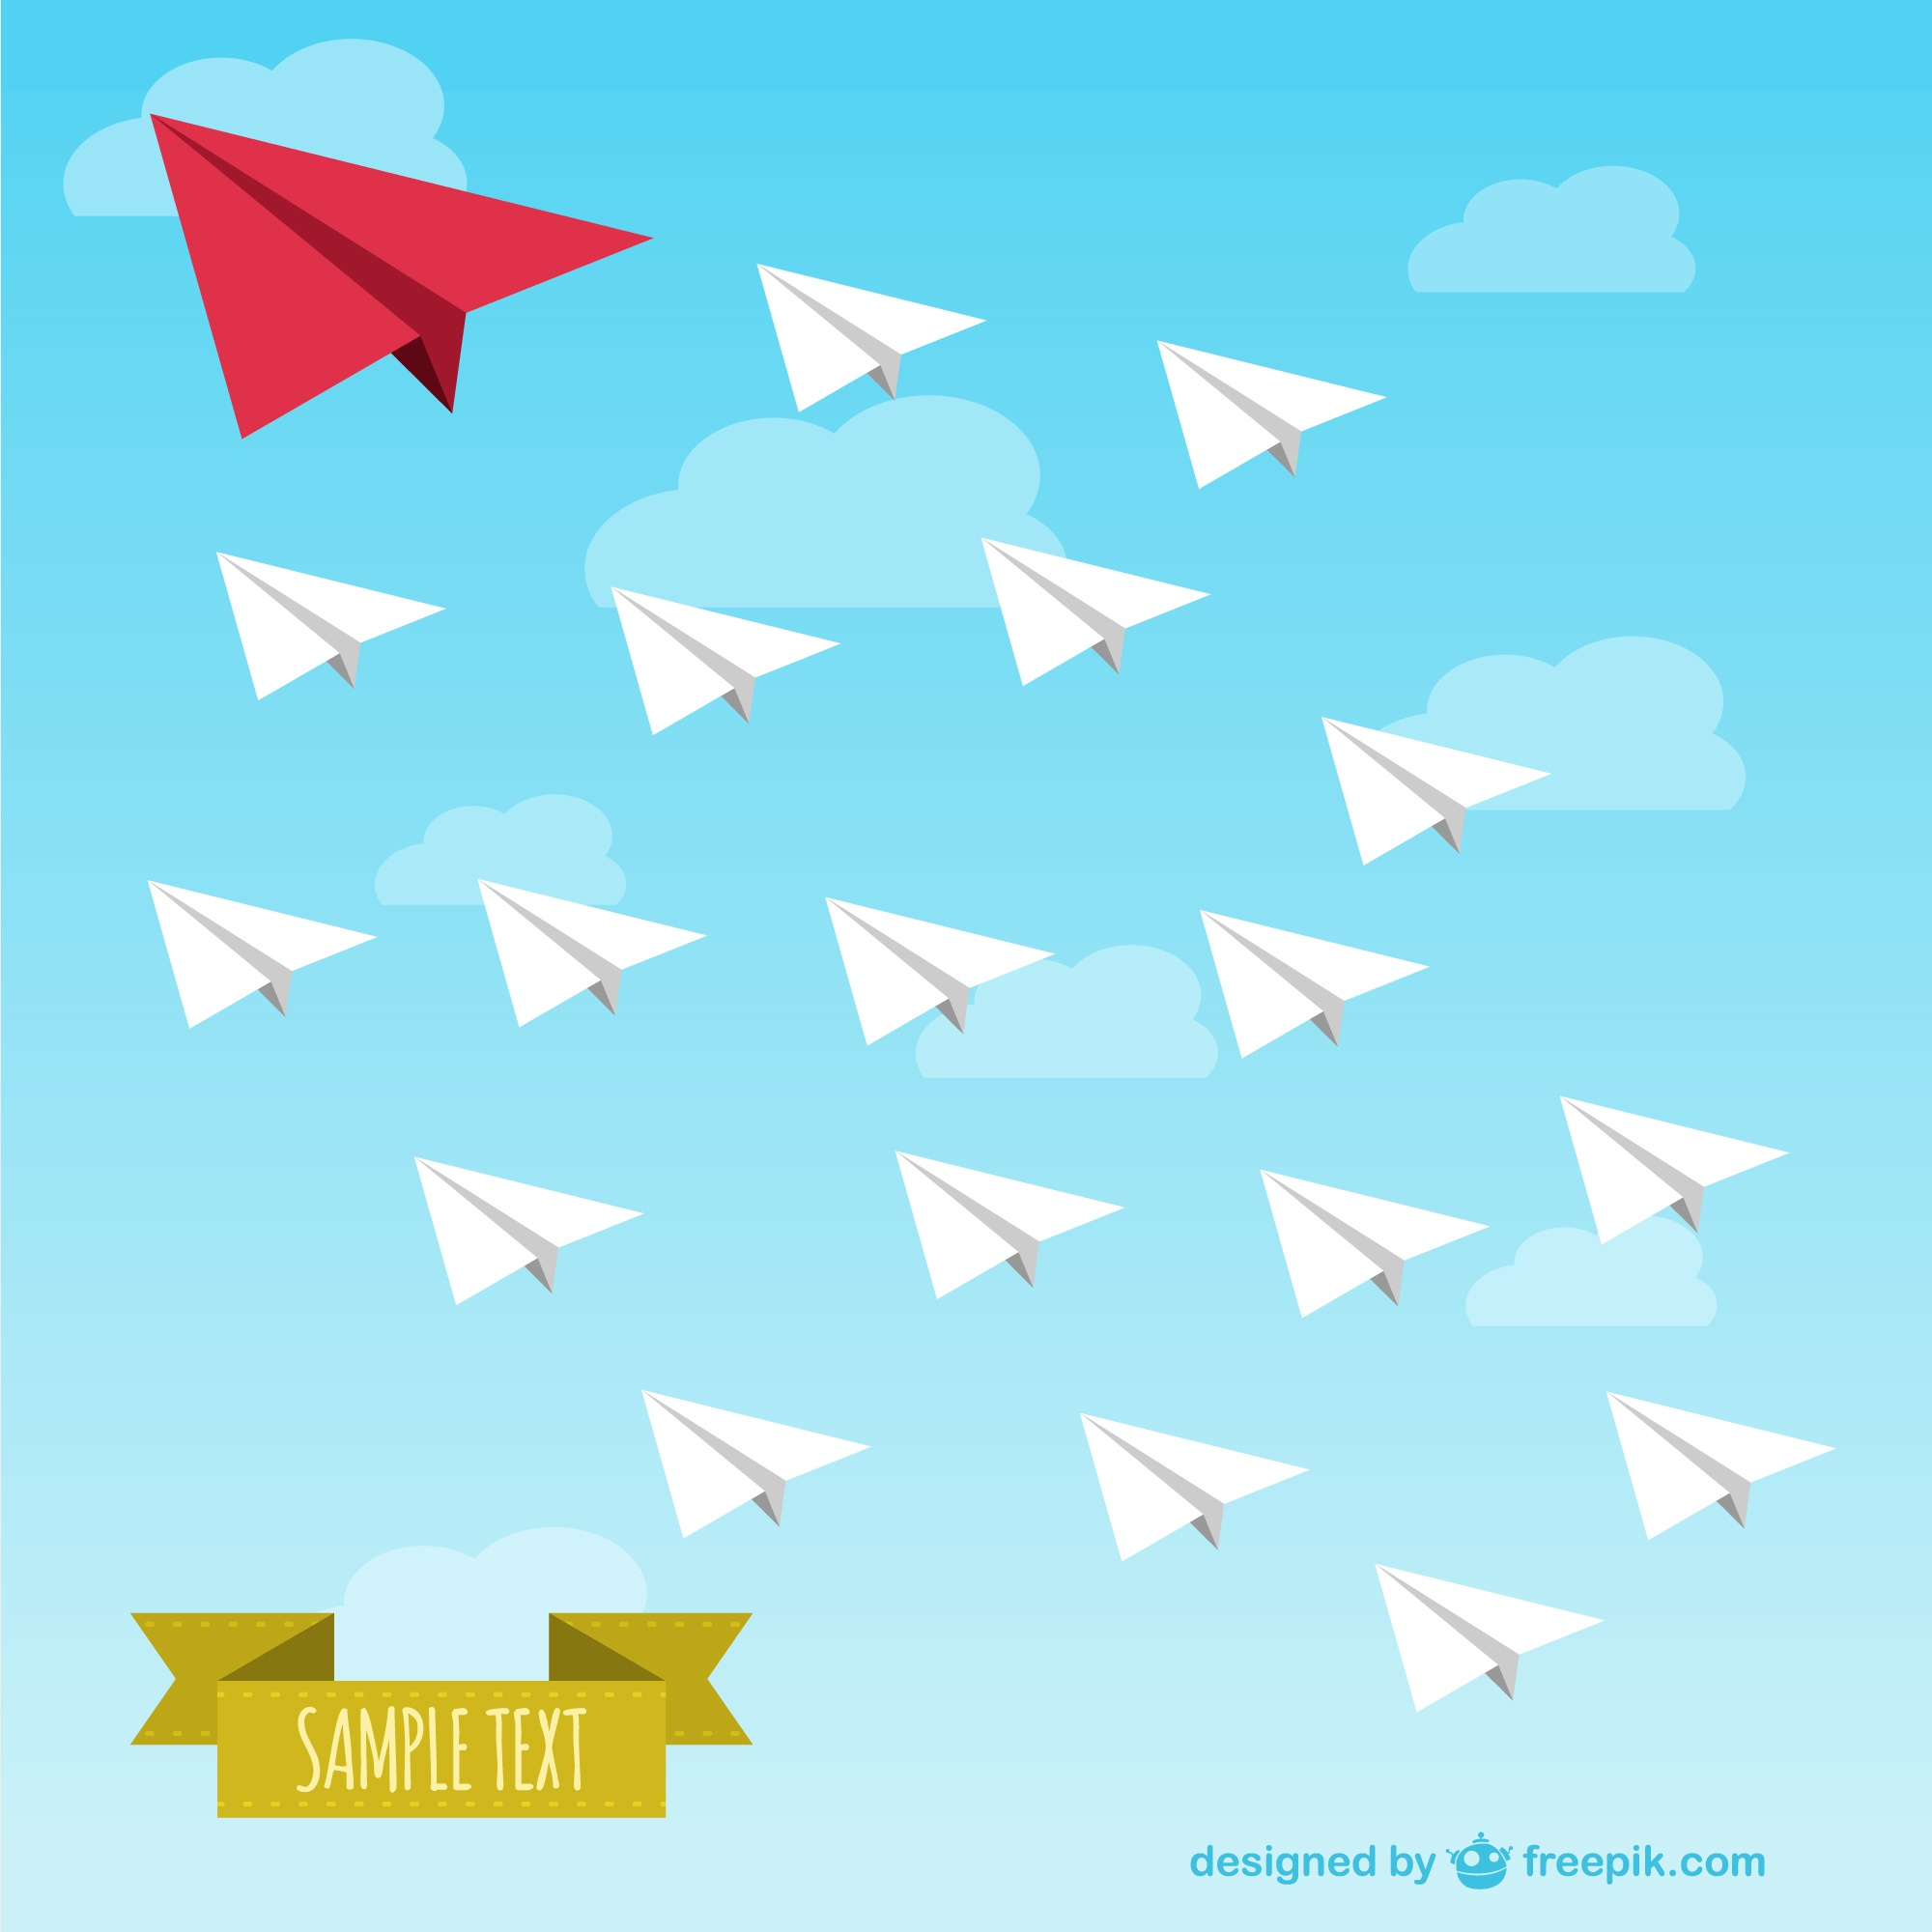 Vector paper airplanes free illustration